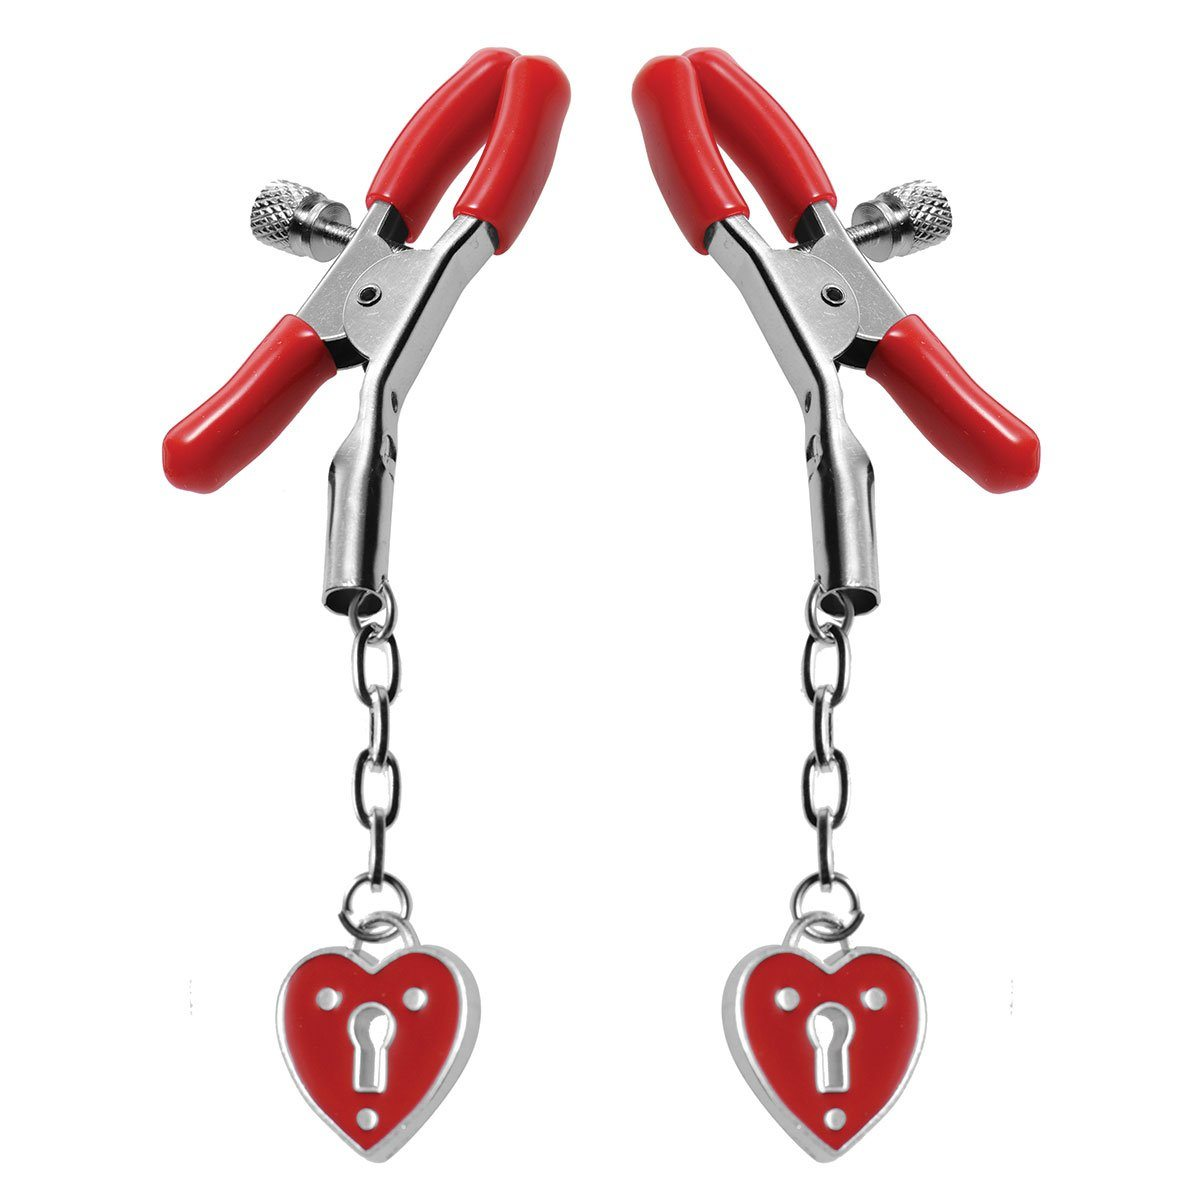 XR Brands Heart Padlock Nipple Clamps Clamps & Pumps XR Brands Default Title